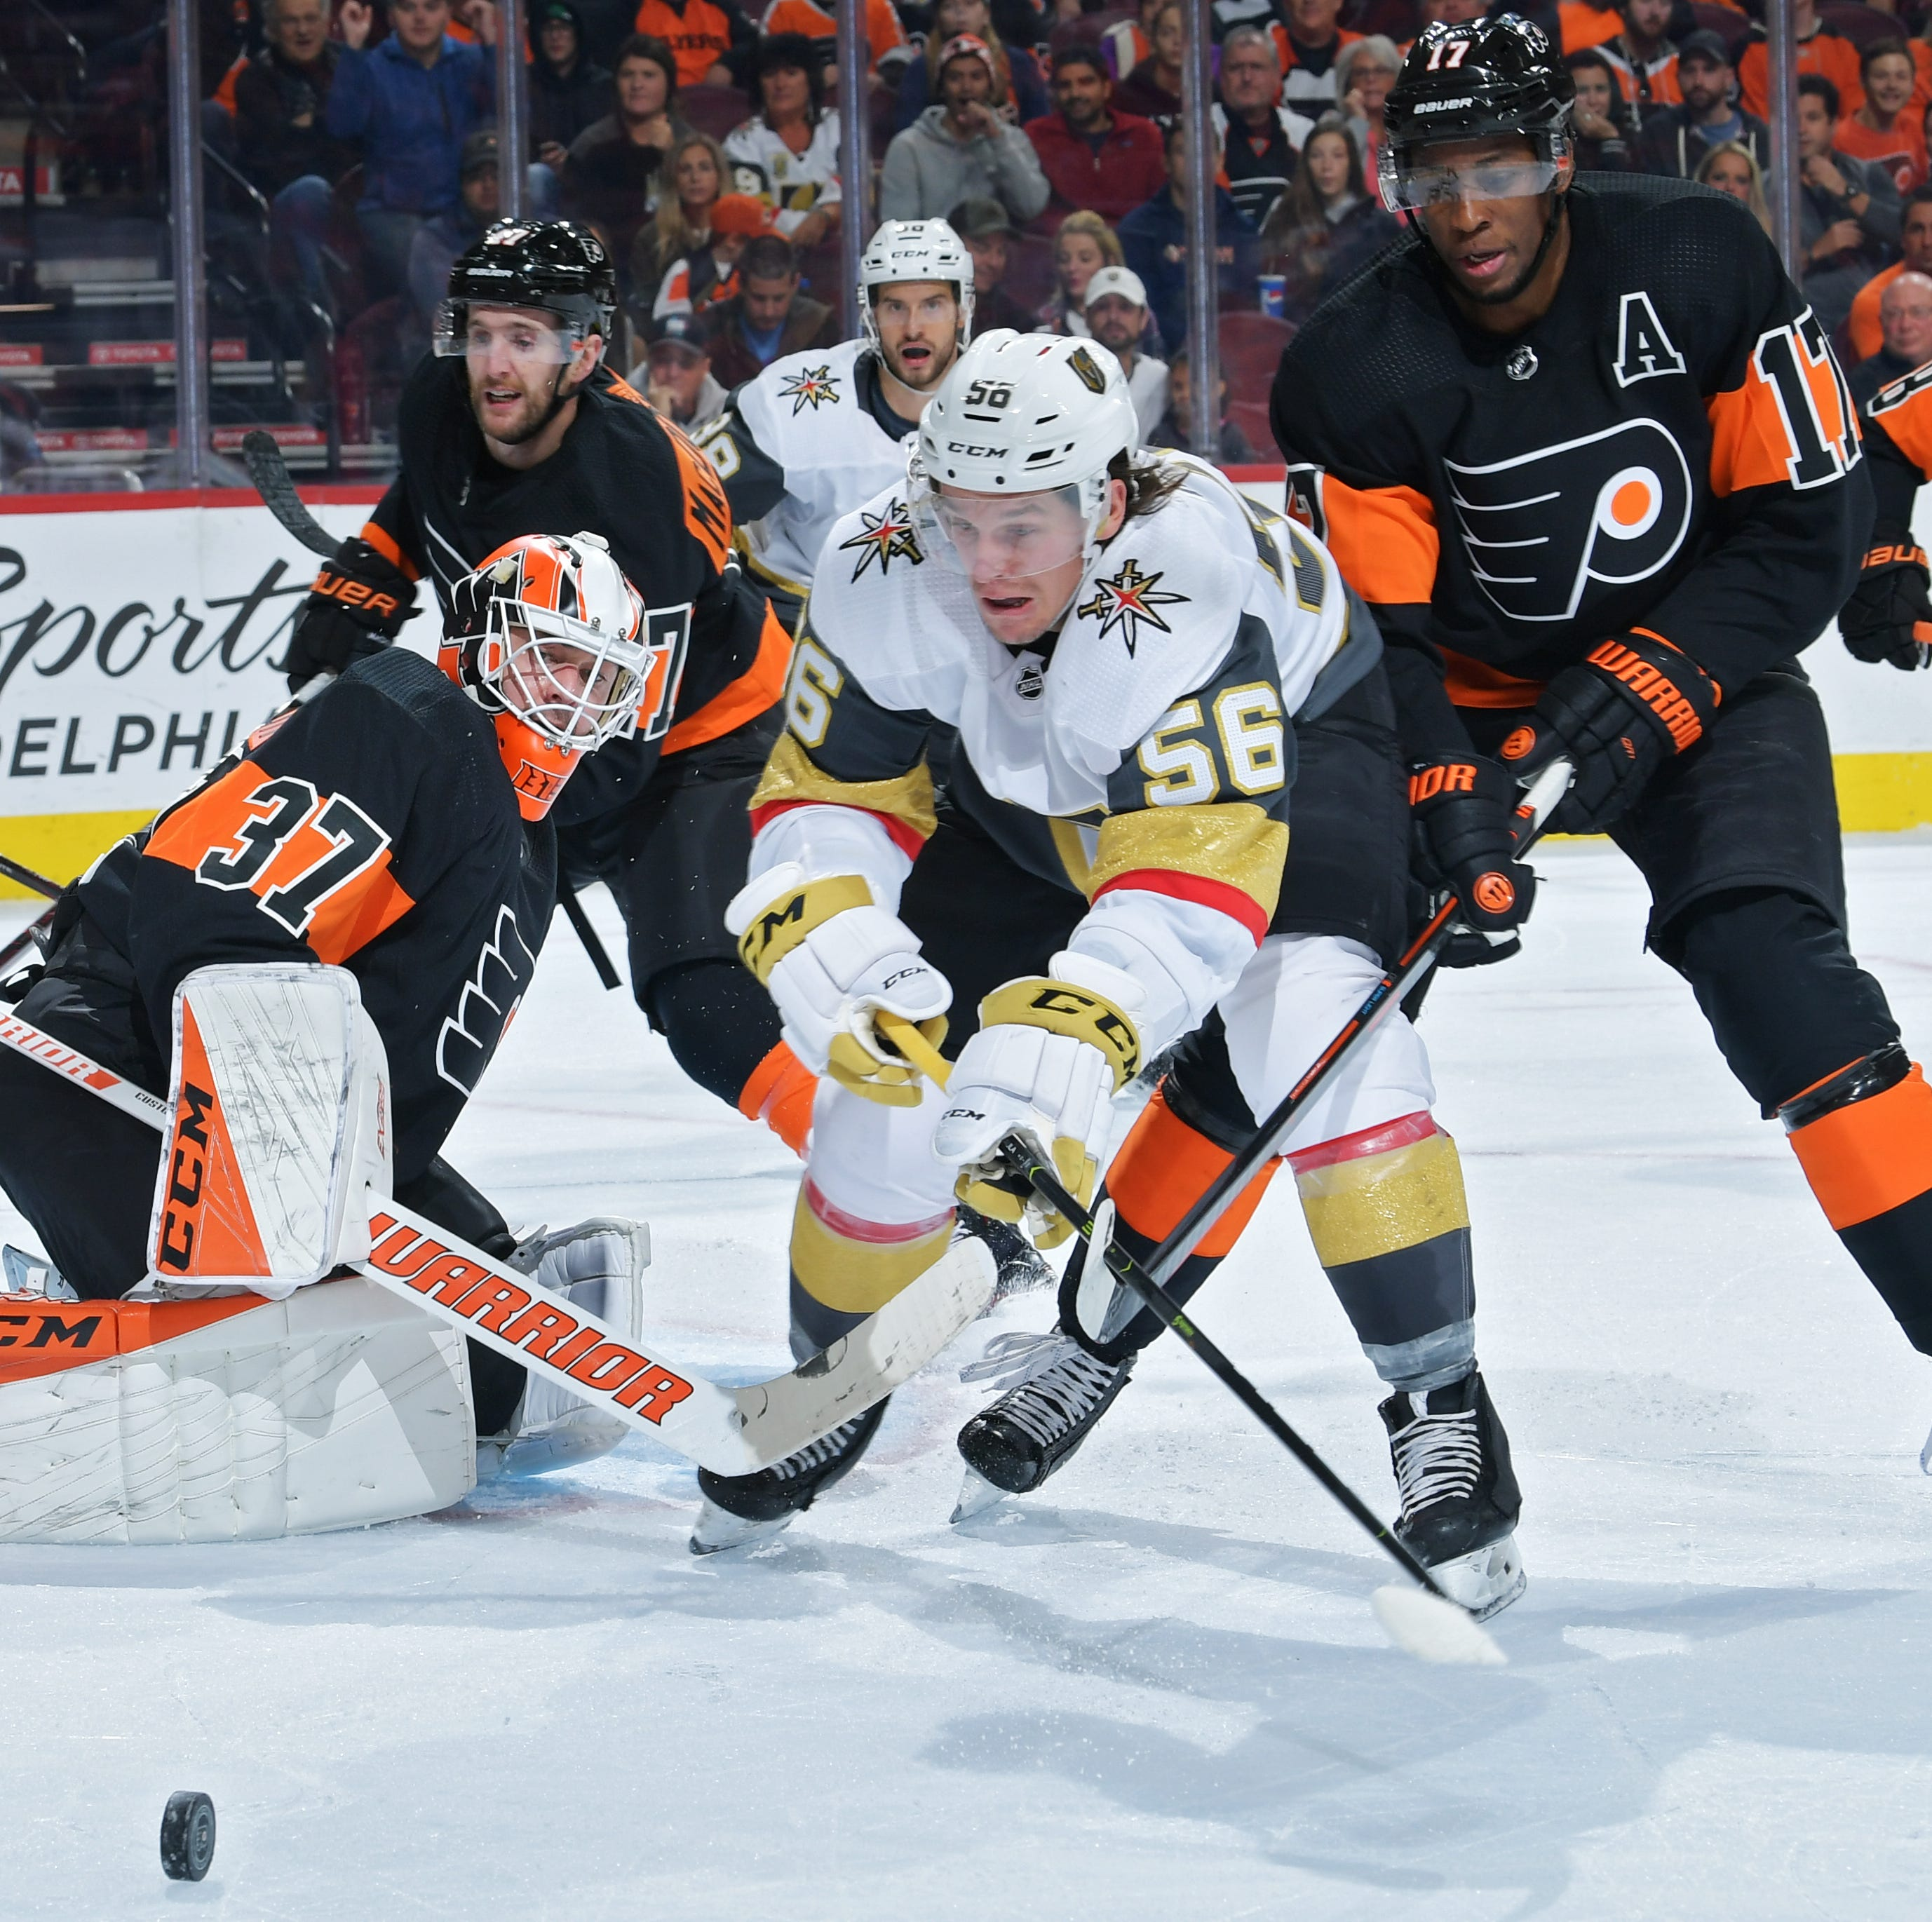 Flyers' solid defensive effort needs to translate to more